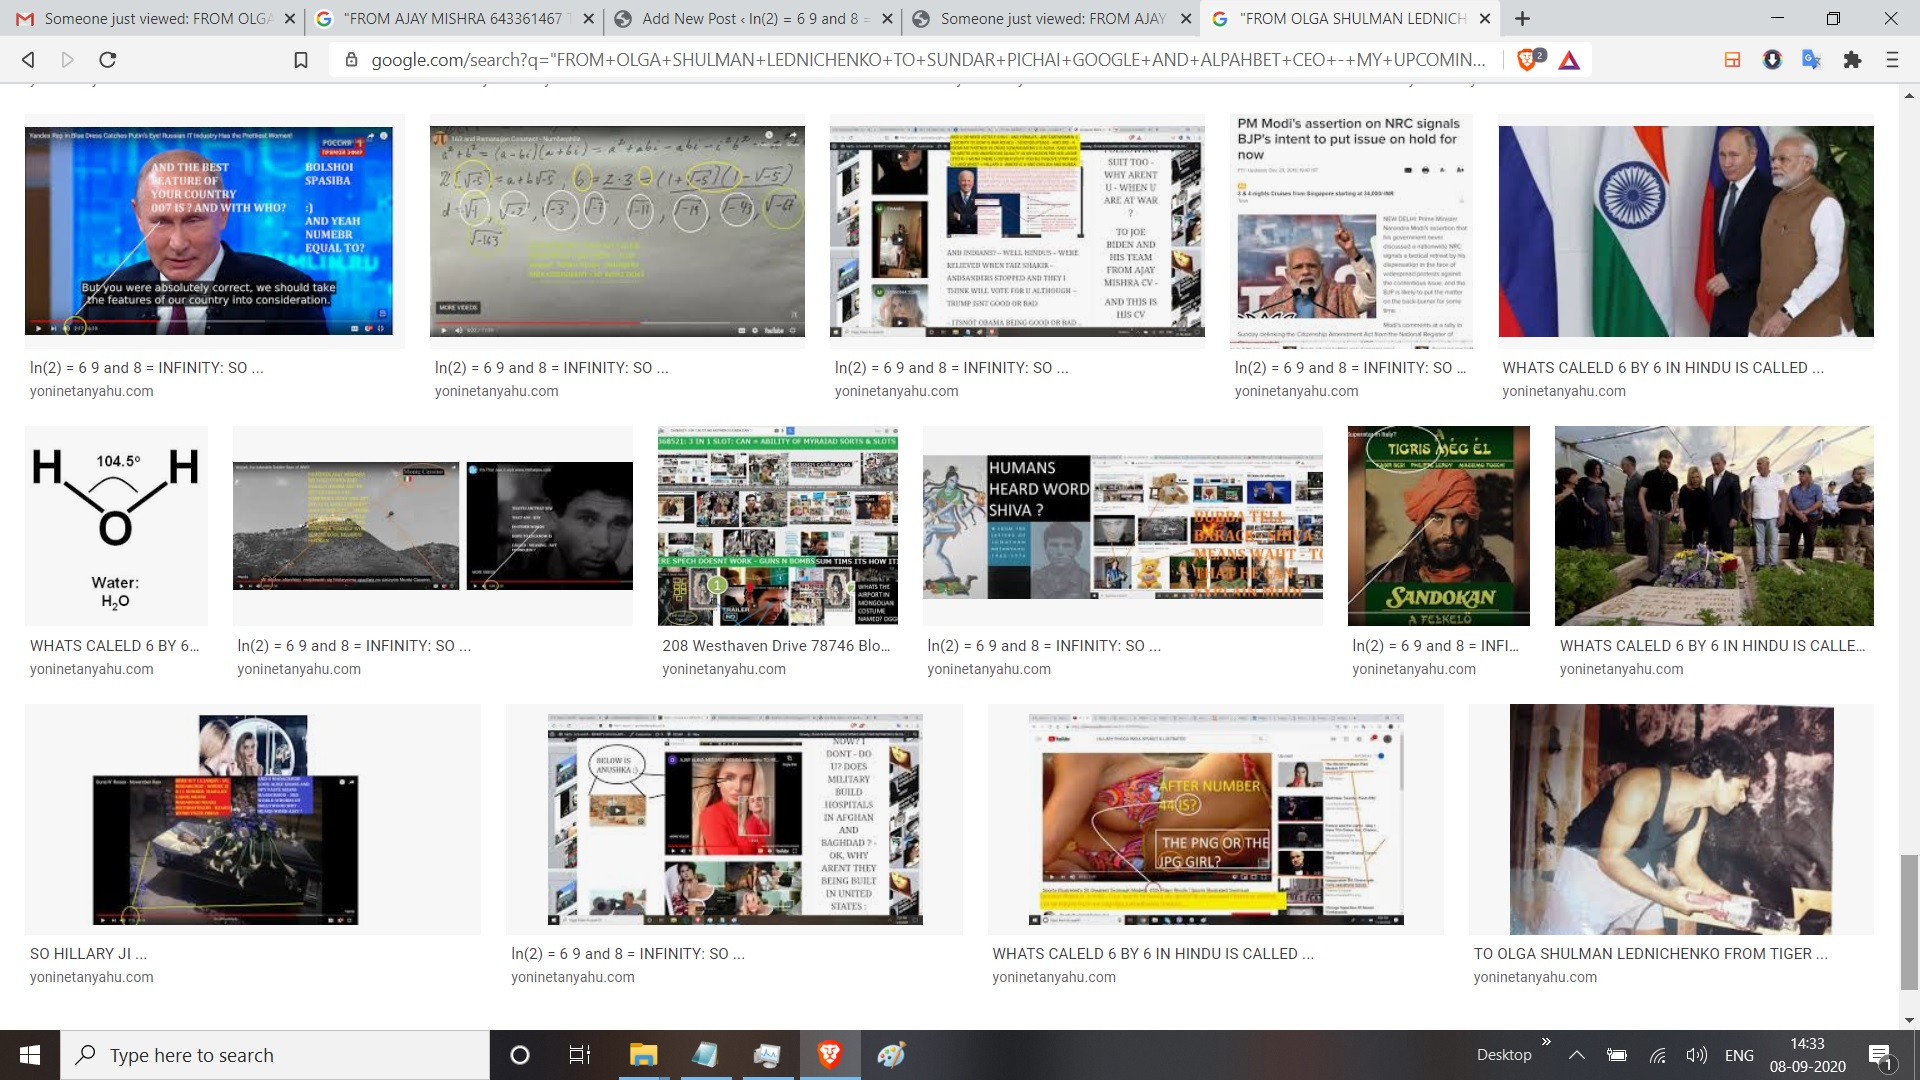 """""""FROM OLGA SHULMAN LEDNICHENKO TO SUNDAR PICHAI GOOGLE AND ALPAHBET CEO - MY UPCOMING HAPPY HANUKKAH NOT HAPPY HOLIDAYS, BU,T HAPPY HANUKKAH AND HAPPY NEW YEAR TO U AND ANJALI AND SURABHI KAUL AT GOOGLE AND VINEET BUCH AT GOOGLE AND VINOD KHOSLA AND BILL CLINTON AT NEW YORK - SO, HERE IS MY PREVIEW -: THE BRAHMIN AND THE BANOYA PARTS : FIRTSTHE BRAHMIN PART : -> SOULF OF GOOGLE -> EQUAL TO : DEPICTED IN AN EQUATION => HERE -> AS : GOOGLE EQUAL TO READ -> RANK -> RELAY/RENDER - THE HTML : HTML = SOME CALL IT DISCOVERY, SOME CALL IT KNOWLEDGE - BUT I CALL IT HTML EQUAL TO WORDS PLUS IMAGES PLUS MULTI MEDIA - MULTI MEDIA COULD BE GANIMATED GIFS, YU TUBE, VIDEOS, AND VIDEO VIEDOS ETC ETC ETC - NOW, FACEBOOK EQAUL TO - NOT DISCOVERY, ITS FILETRED, SHIT - ABOUT THE WHAT I CALL -"""" KNOWN TO MY FAMILY """" AND TWITETR = VANITY PROJECTS ABOUT SELECTED SHIT - FROM MY PEPER AND U KNOW MOTHERTRFUCKING EGOTTISTCIAL MOTHERUFCKERS WHO CALL THEMSELVES AS STARS, AND SHIT, AS OPPOSED TO HOW - OOEPLE FROM IT SAY WHEN THEY ARE CALELD GEUNIUS OR SMART - OK - U CAN SKIP MY ANGRY PARTS - AND SO IS INSTRGAM SHIT - NOW, BACK TO GOOGLE, WHICH I LIKE MORE THAN SOCIAL SHIT MEDIA - SO BRAHMIN PART OF GOOGLE = SOULD F SOGOOGLE = READ - RANK - RENDER OR RRELAY - RENDERING IS TEHCNCIAL TERM FOR HTL, HTML MENAS HYPER TEXT MARKUP LANGAUEG AND LATEST VESIJPON I THINK IS 5 POINT OOOOOOOH :) - THE BANIYA PART OF GOOGLE EAUL TO -> SEACH -> SCAN -> CCIK -> SEAHC IS THRU WHATS KNOWN IN YUR HEAD PLUS WHAT IU KTHINK U WANT TO KNOW - WHCICH IN THEORY OF CHOICE IS CALELD ITEM NUMEBR 1 - IE - WHAT IS DESIREABLE - SACN PART EQAL TO THE 2ND ITEM - IN THEORY OF CHOICE WHICH IS ACLELD - WHAT IS FEASIBLE - MENAING? MENAING U CAN ONLY READ OR RANK OR RENDER, WHAT IS PUBLSIHED, BY THERS - U DONT CREATE DATA - OR HTML U ONLY READ - RANK AND RENDER WHATS OTHERSS CREATED - OK : NOW : BRAHMINS ASK WHY - ALSO - AN WHY IS ABOVE - AND BANIYA MEANS MBA SHIT - LIKE INSEAD WHARTON - U FORM WHARTON YES ? OK AJAY TO FROM WHARTON ISN"""